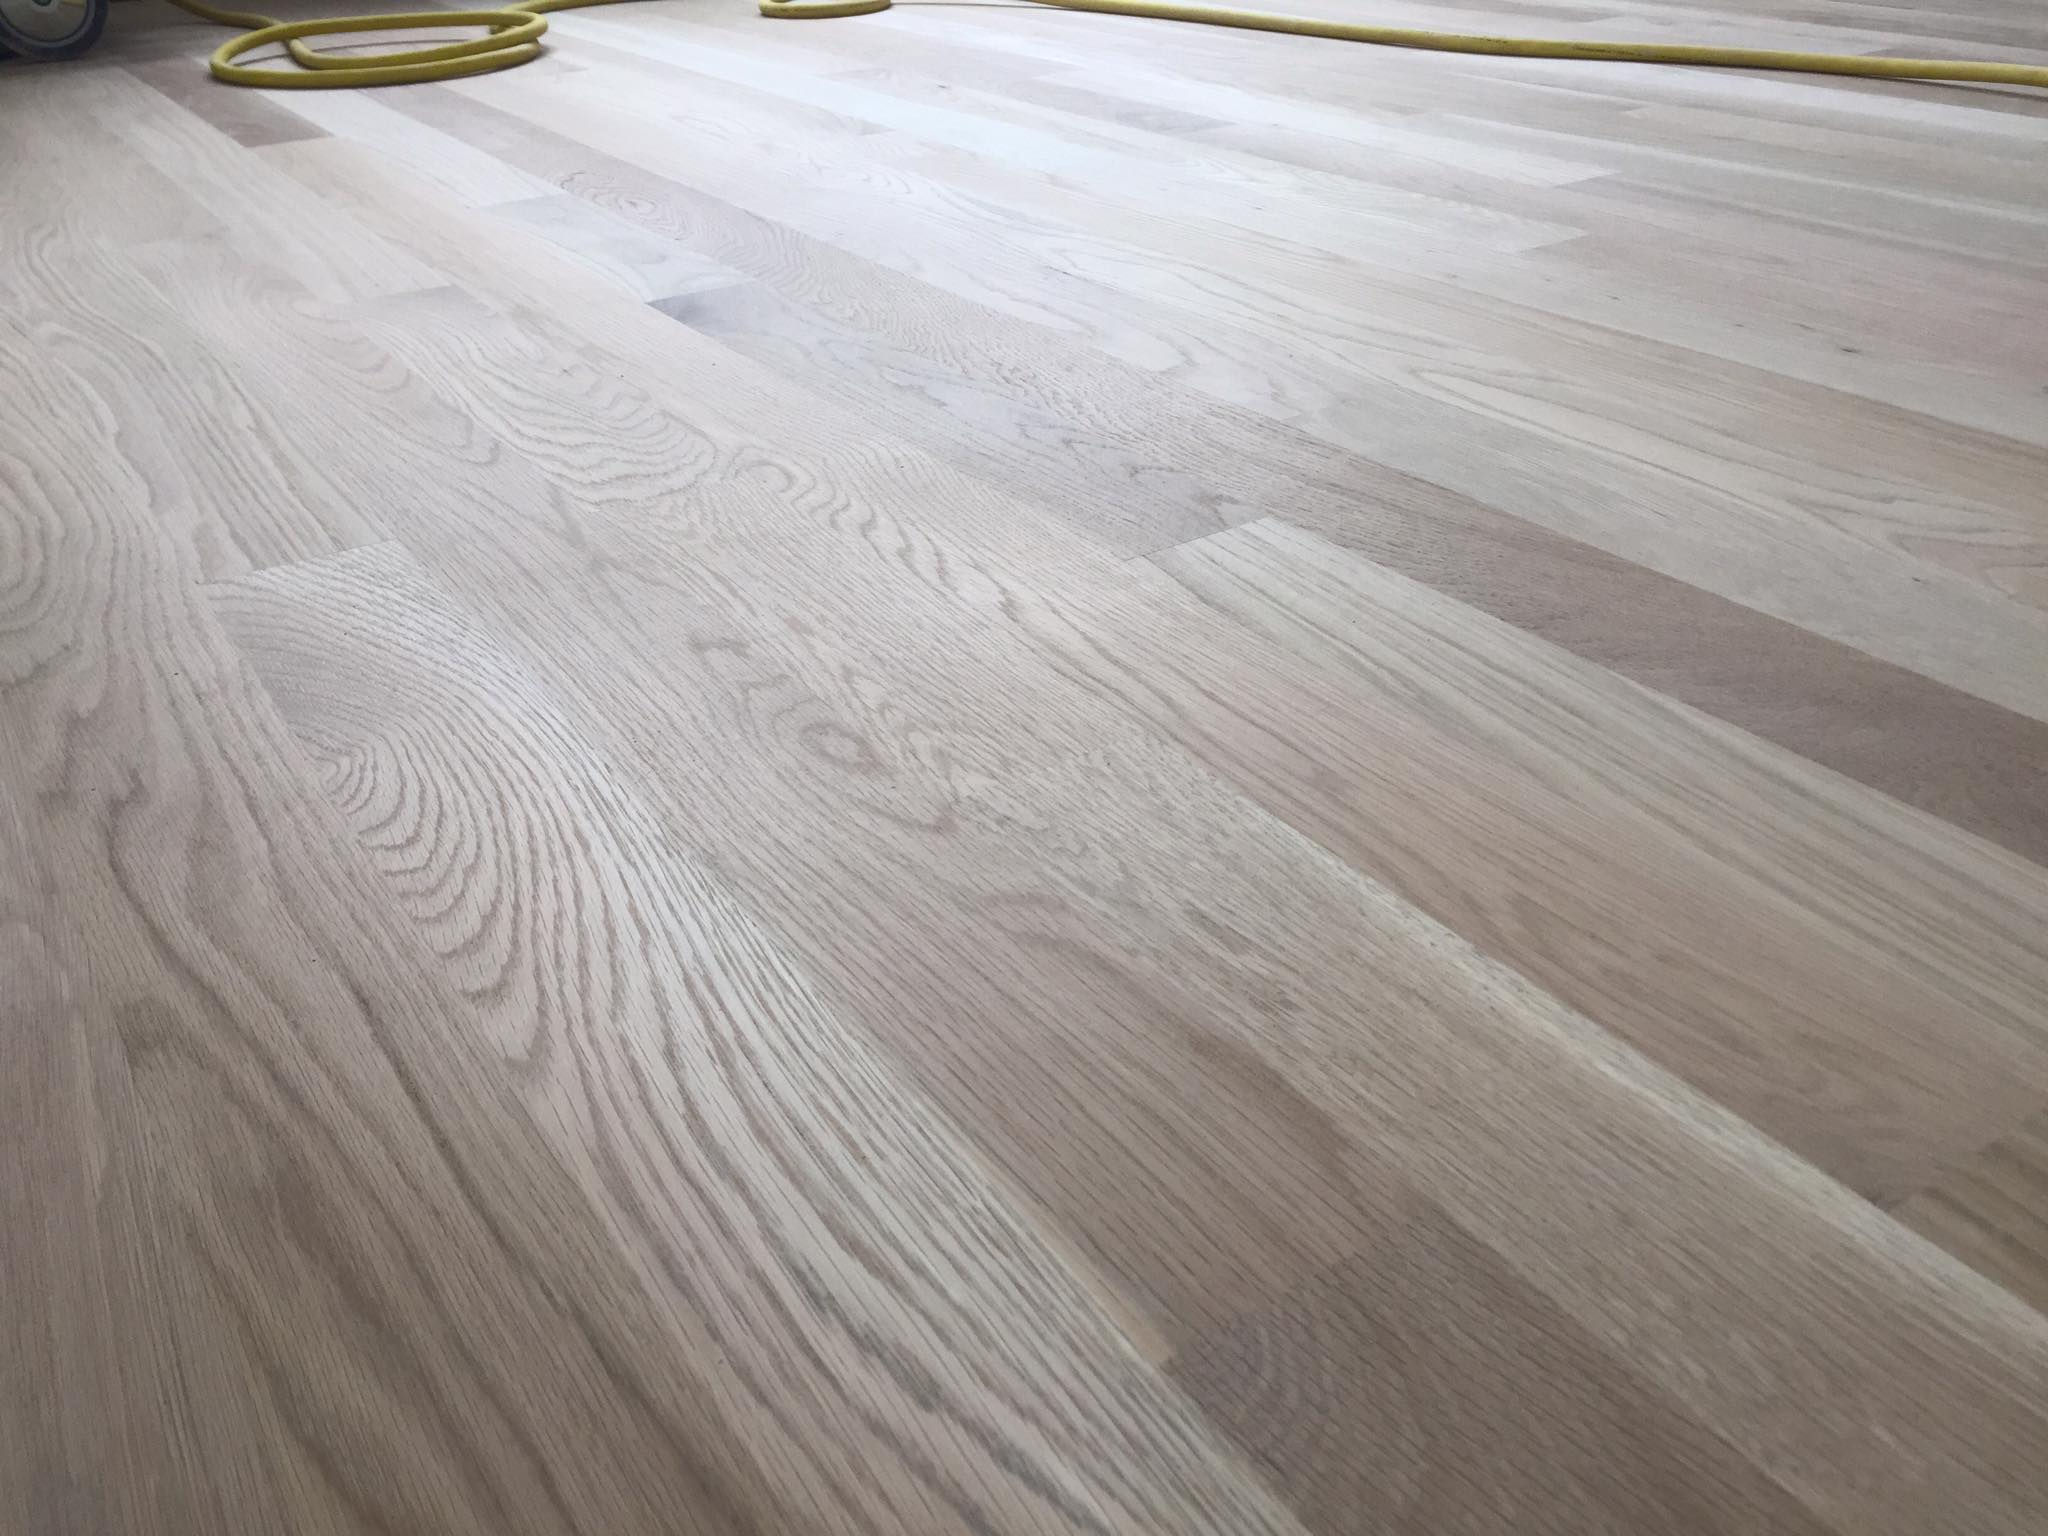 Oak Hardwood Flooring ~ Solid white oak quot hardwood floor installation chicago